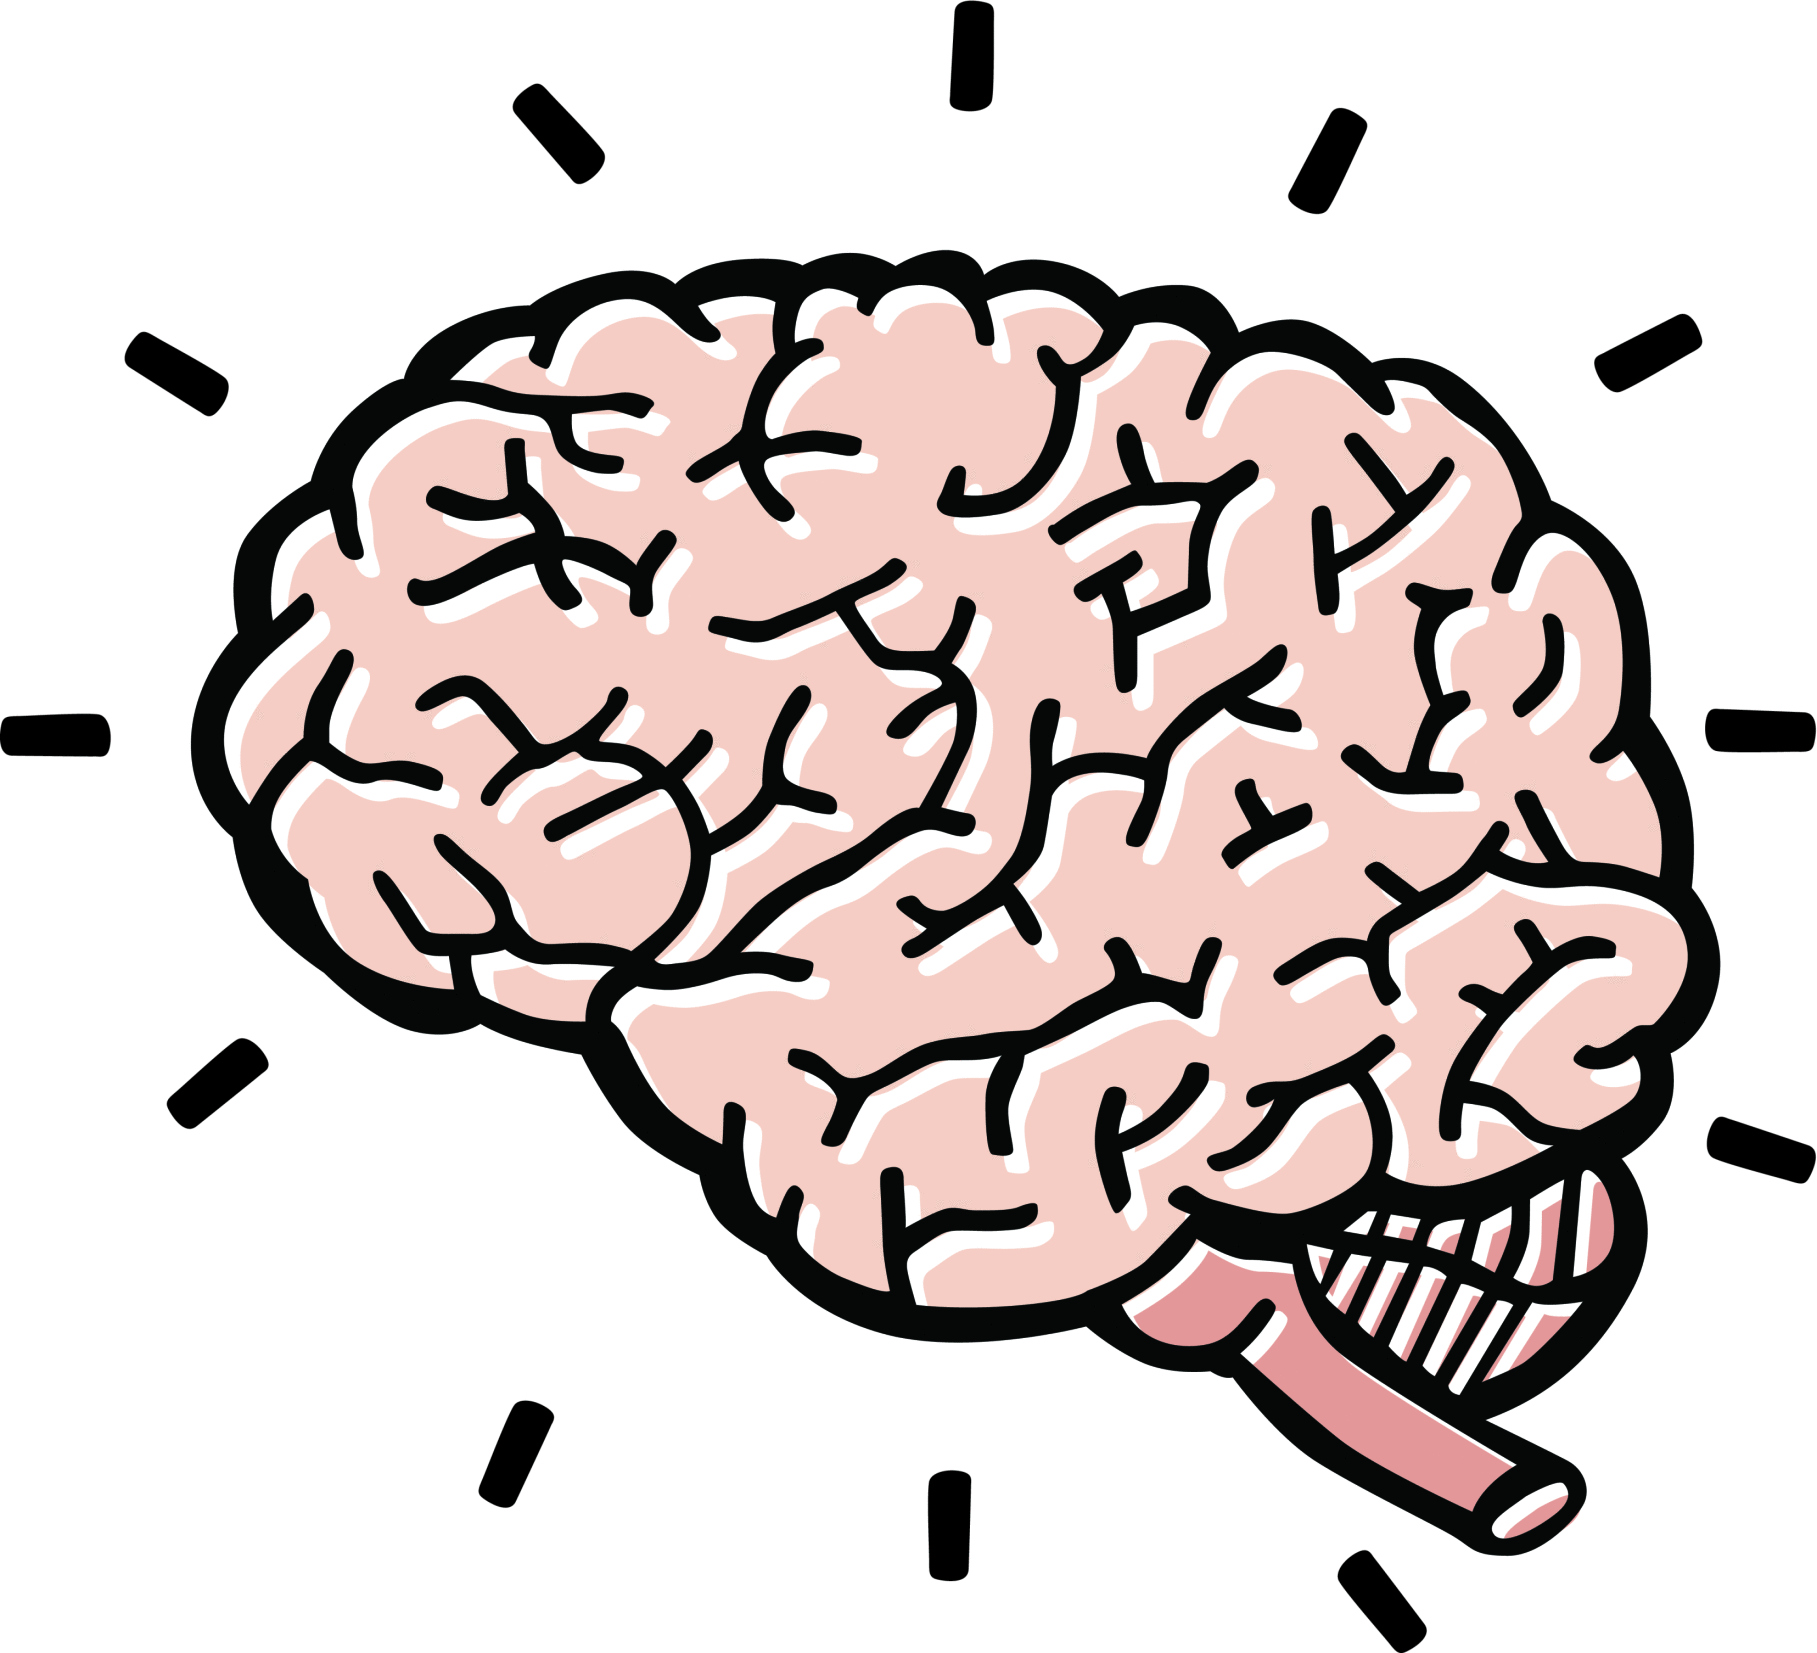 Brain image clipart vector free library Free Brain Cliparts, Download Free Clip Art, Free Clip Art on ... vector free library